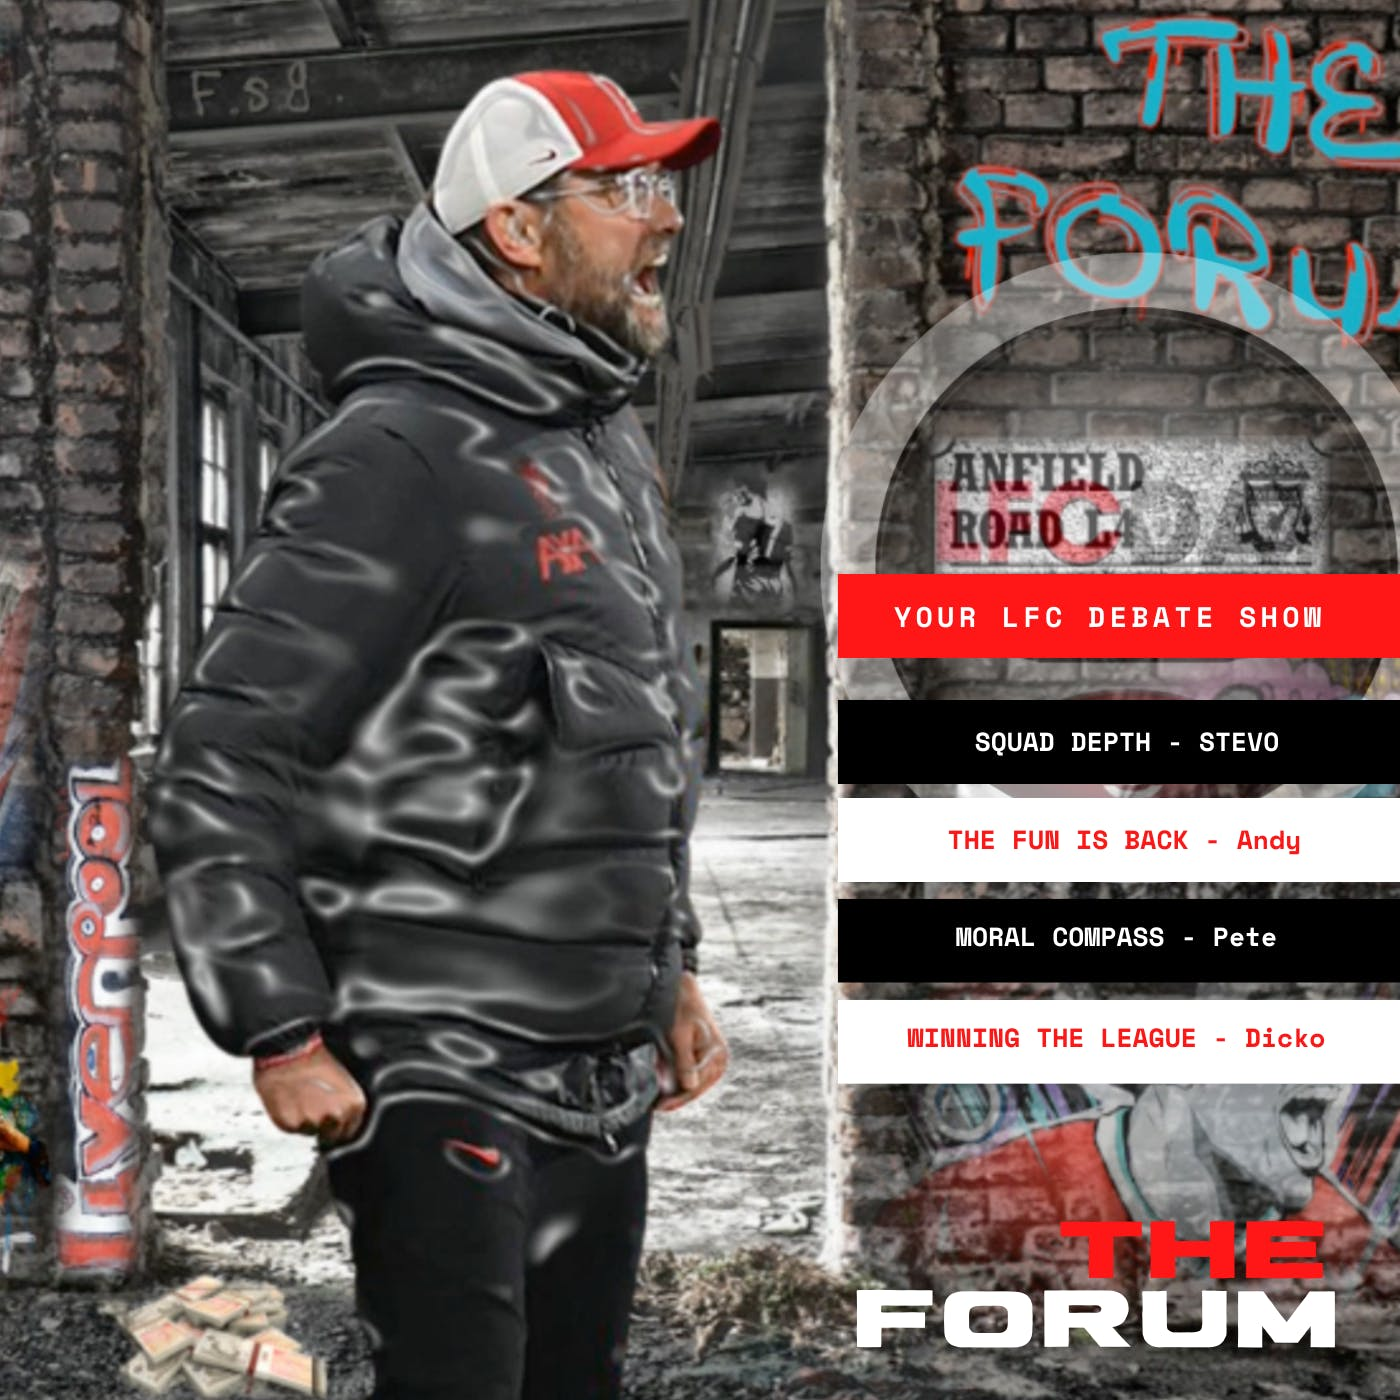 Liverpool For The League | The Forum